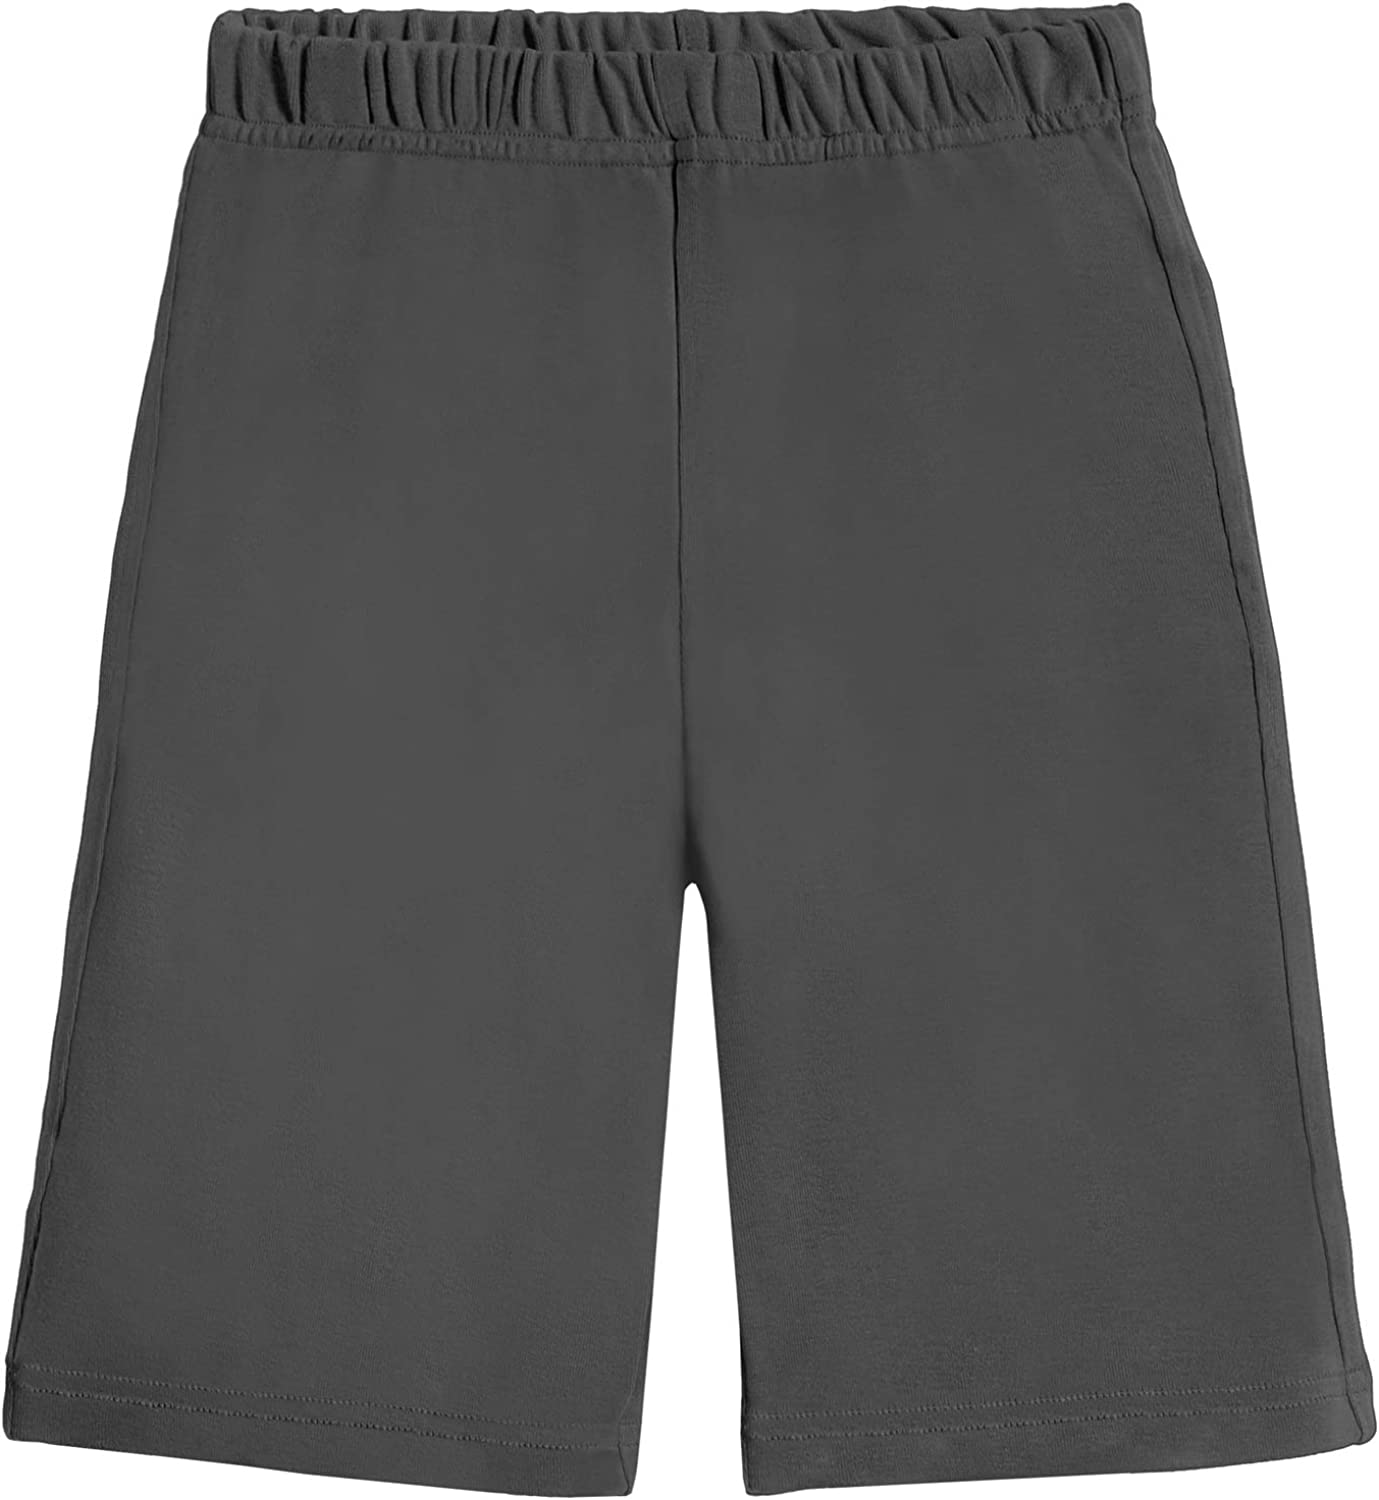 Made in USA City Threads Cotton Athletic Shorts for Boys Sports Camp Play and School